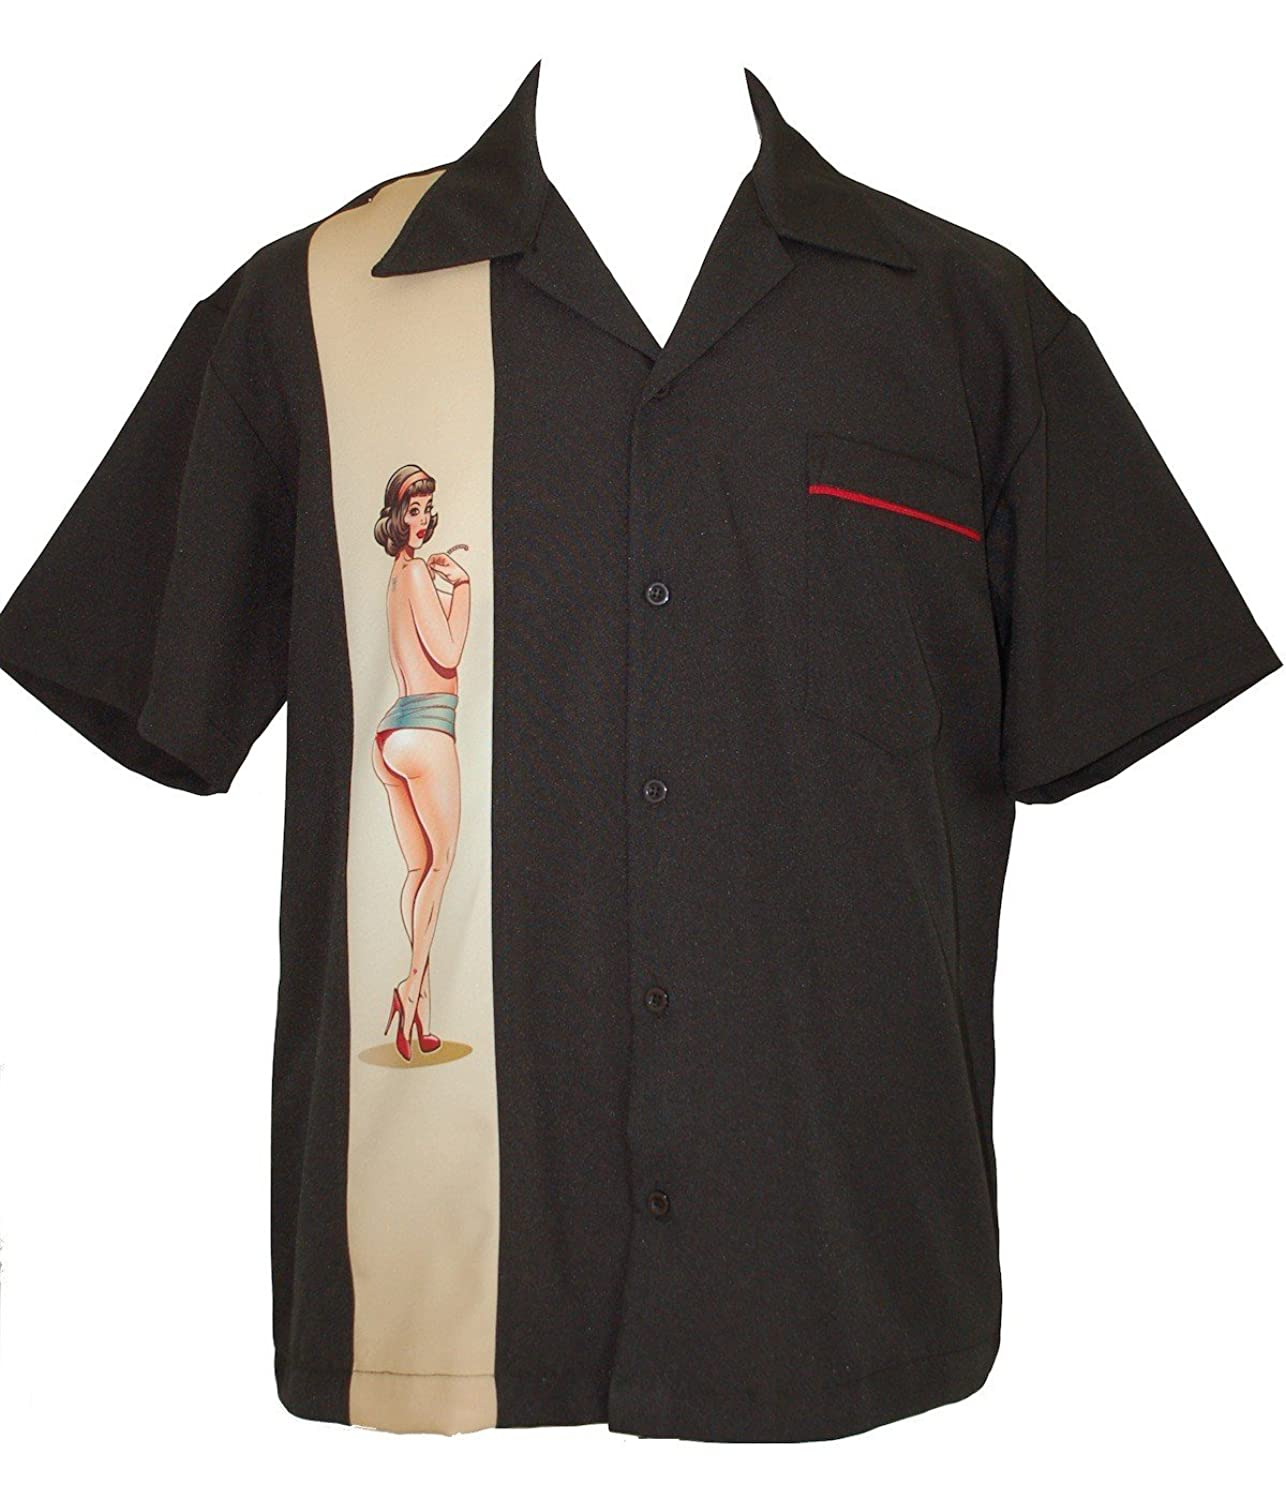 Retro Clothing for Men | Vintage Men's Fashion PinUp Girl Mens Bowling Lounge Retro Shirt ~ BeRetro Classy PinUp Girl $65.95 AT vintagedancer.com